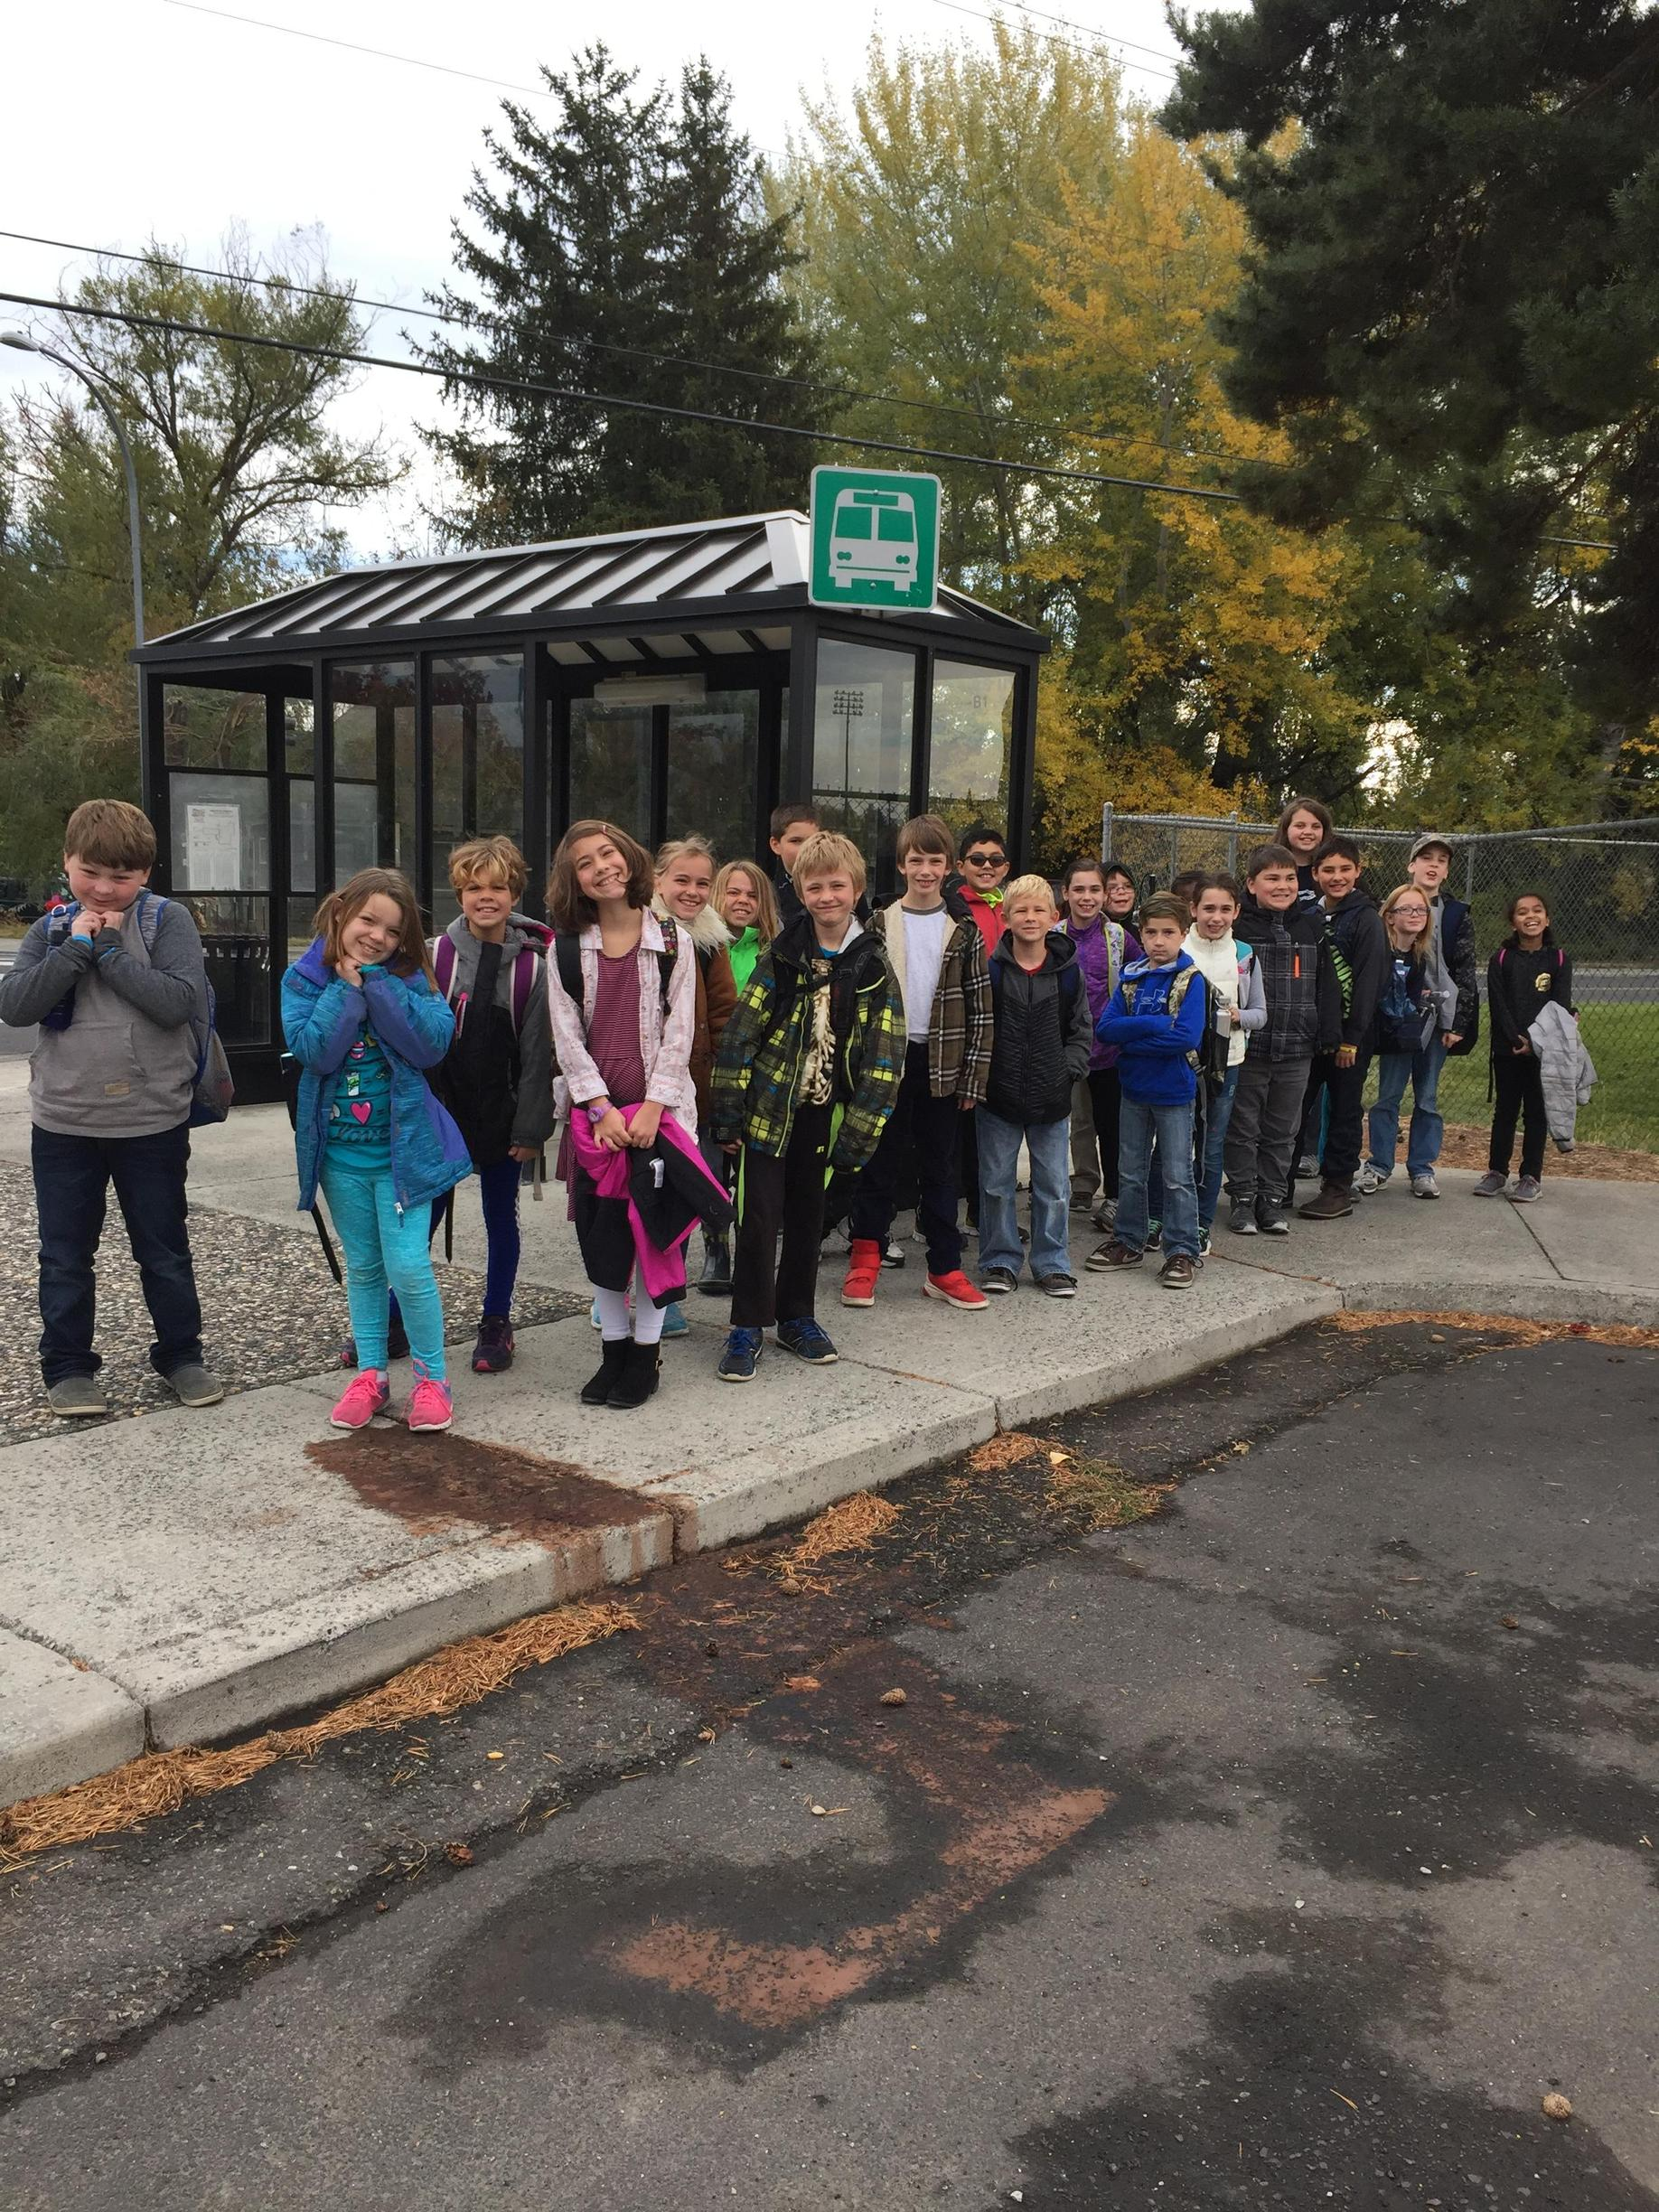 Off our our first field trip. We went to the Appaloosa Horse Museum using public transit. The class went on 14 trips for learning this year!